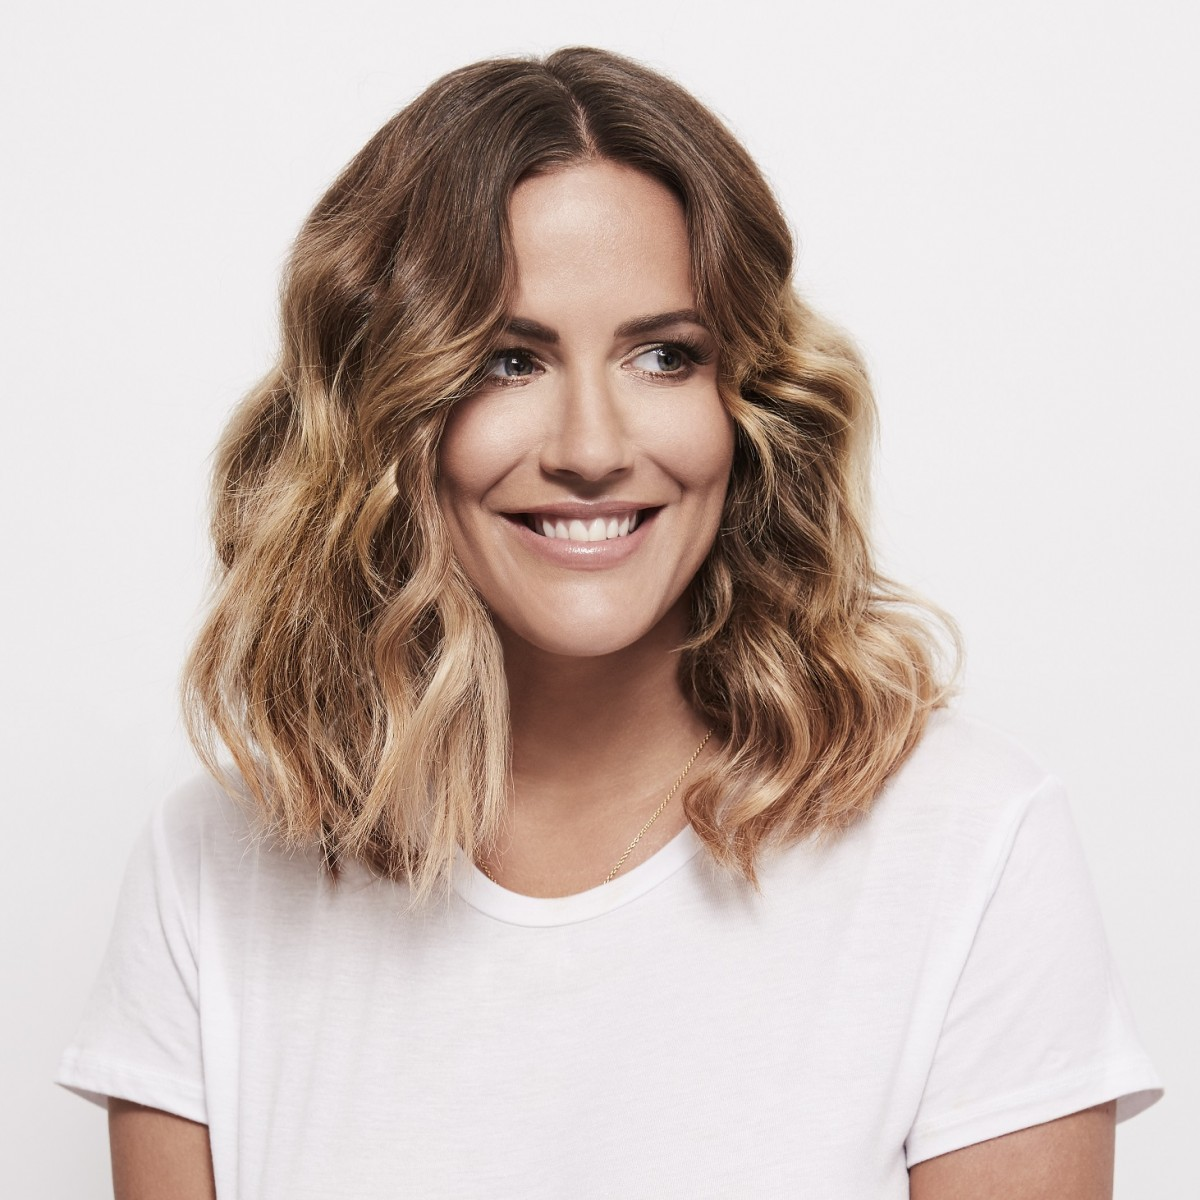 Caroline Flack To Make Her Stage Debut In The National